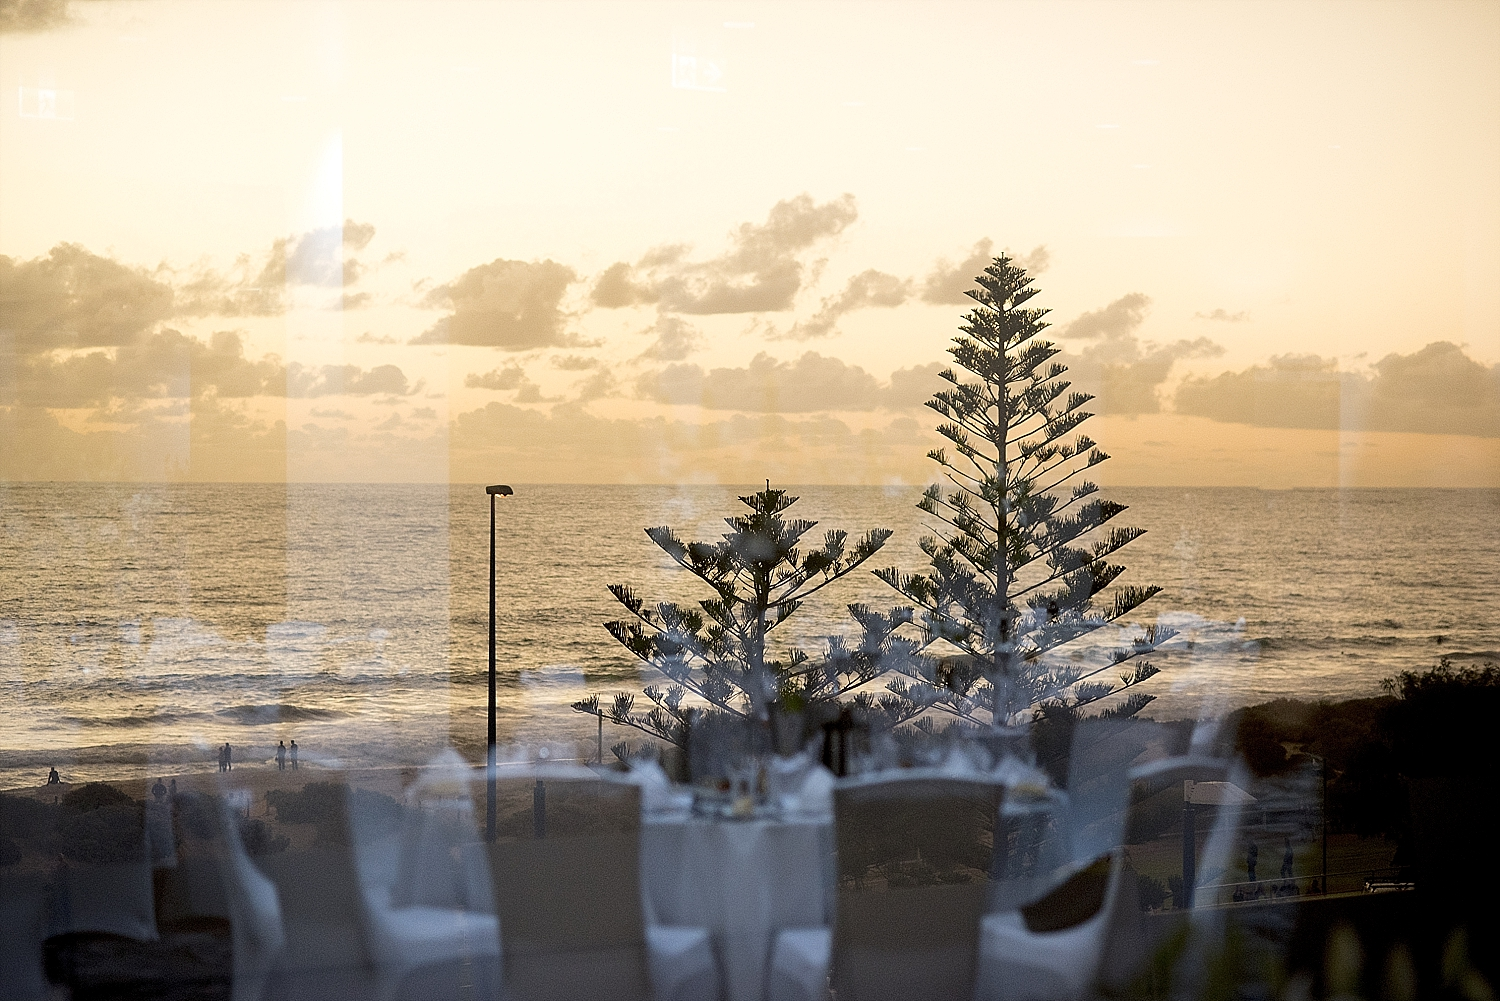 48sunset photos scarborough beach wedding perth60.JPG